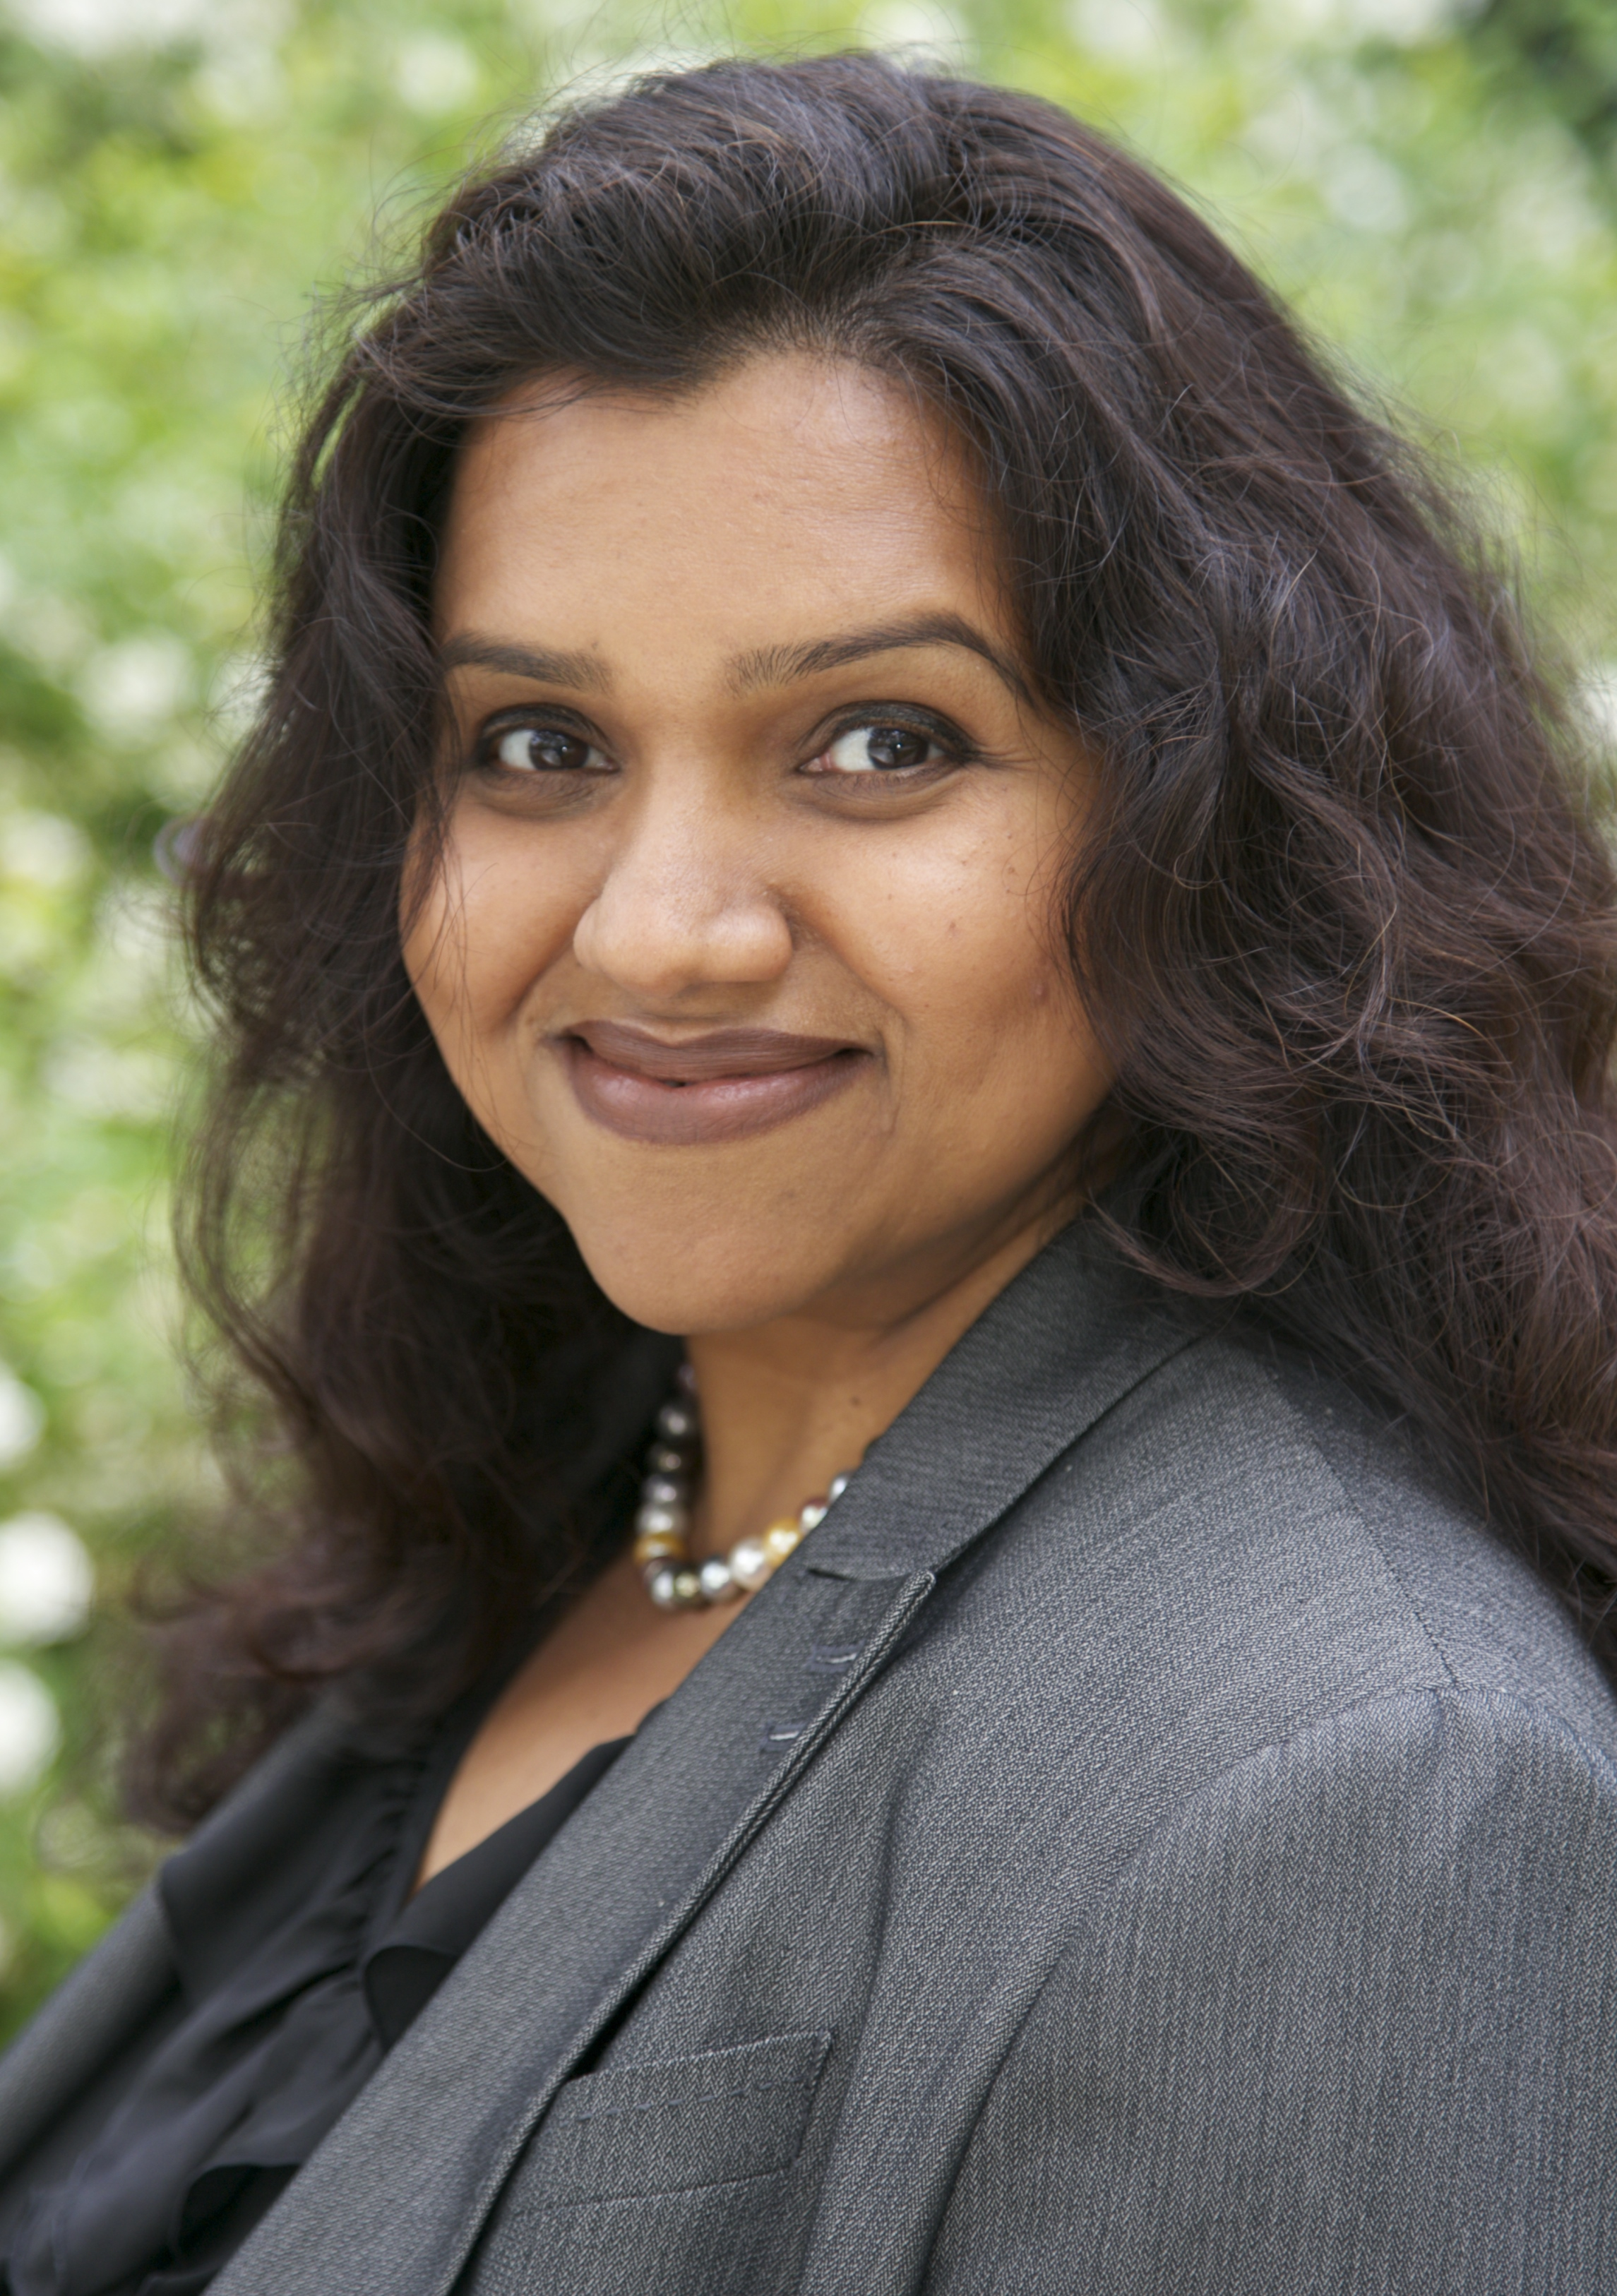 Meena Hassanali - Director, Industry Programs